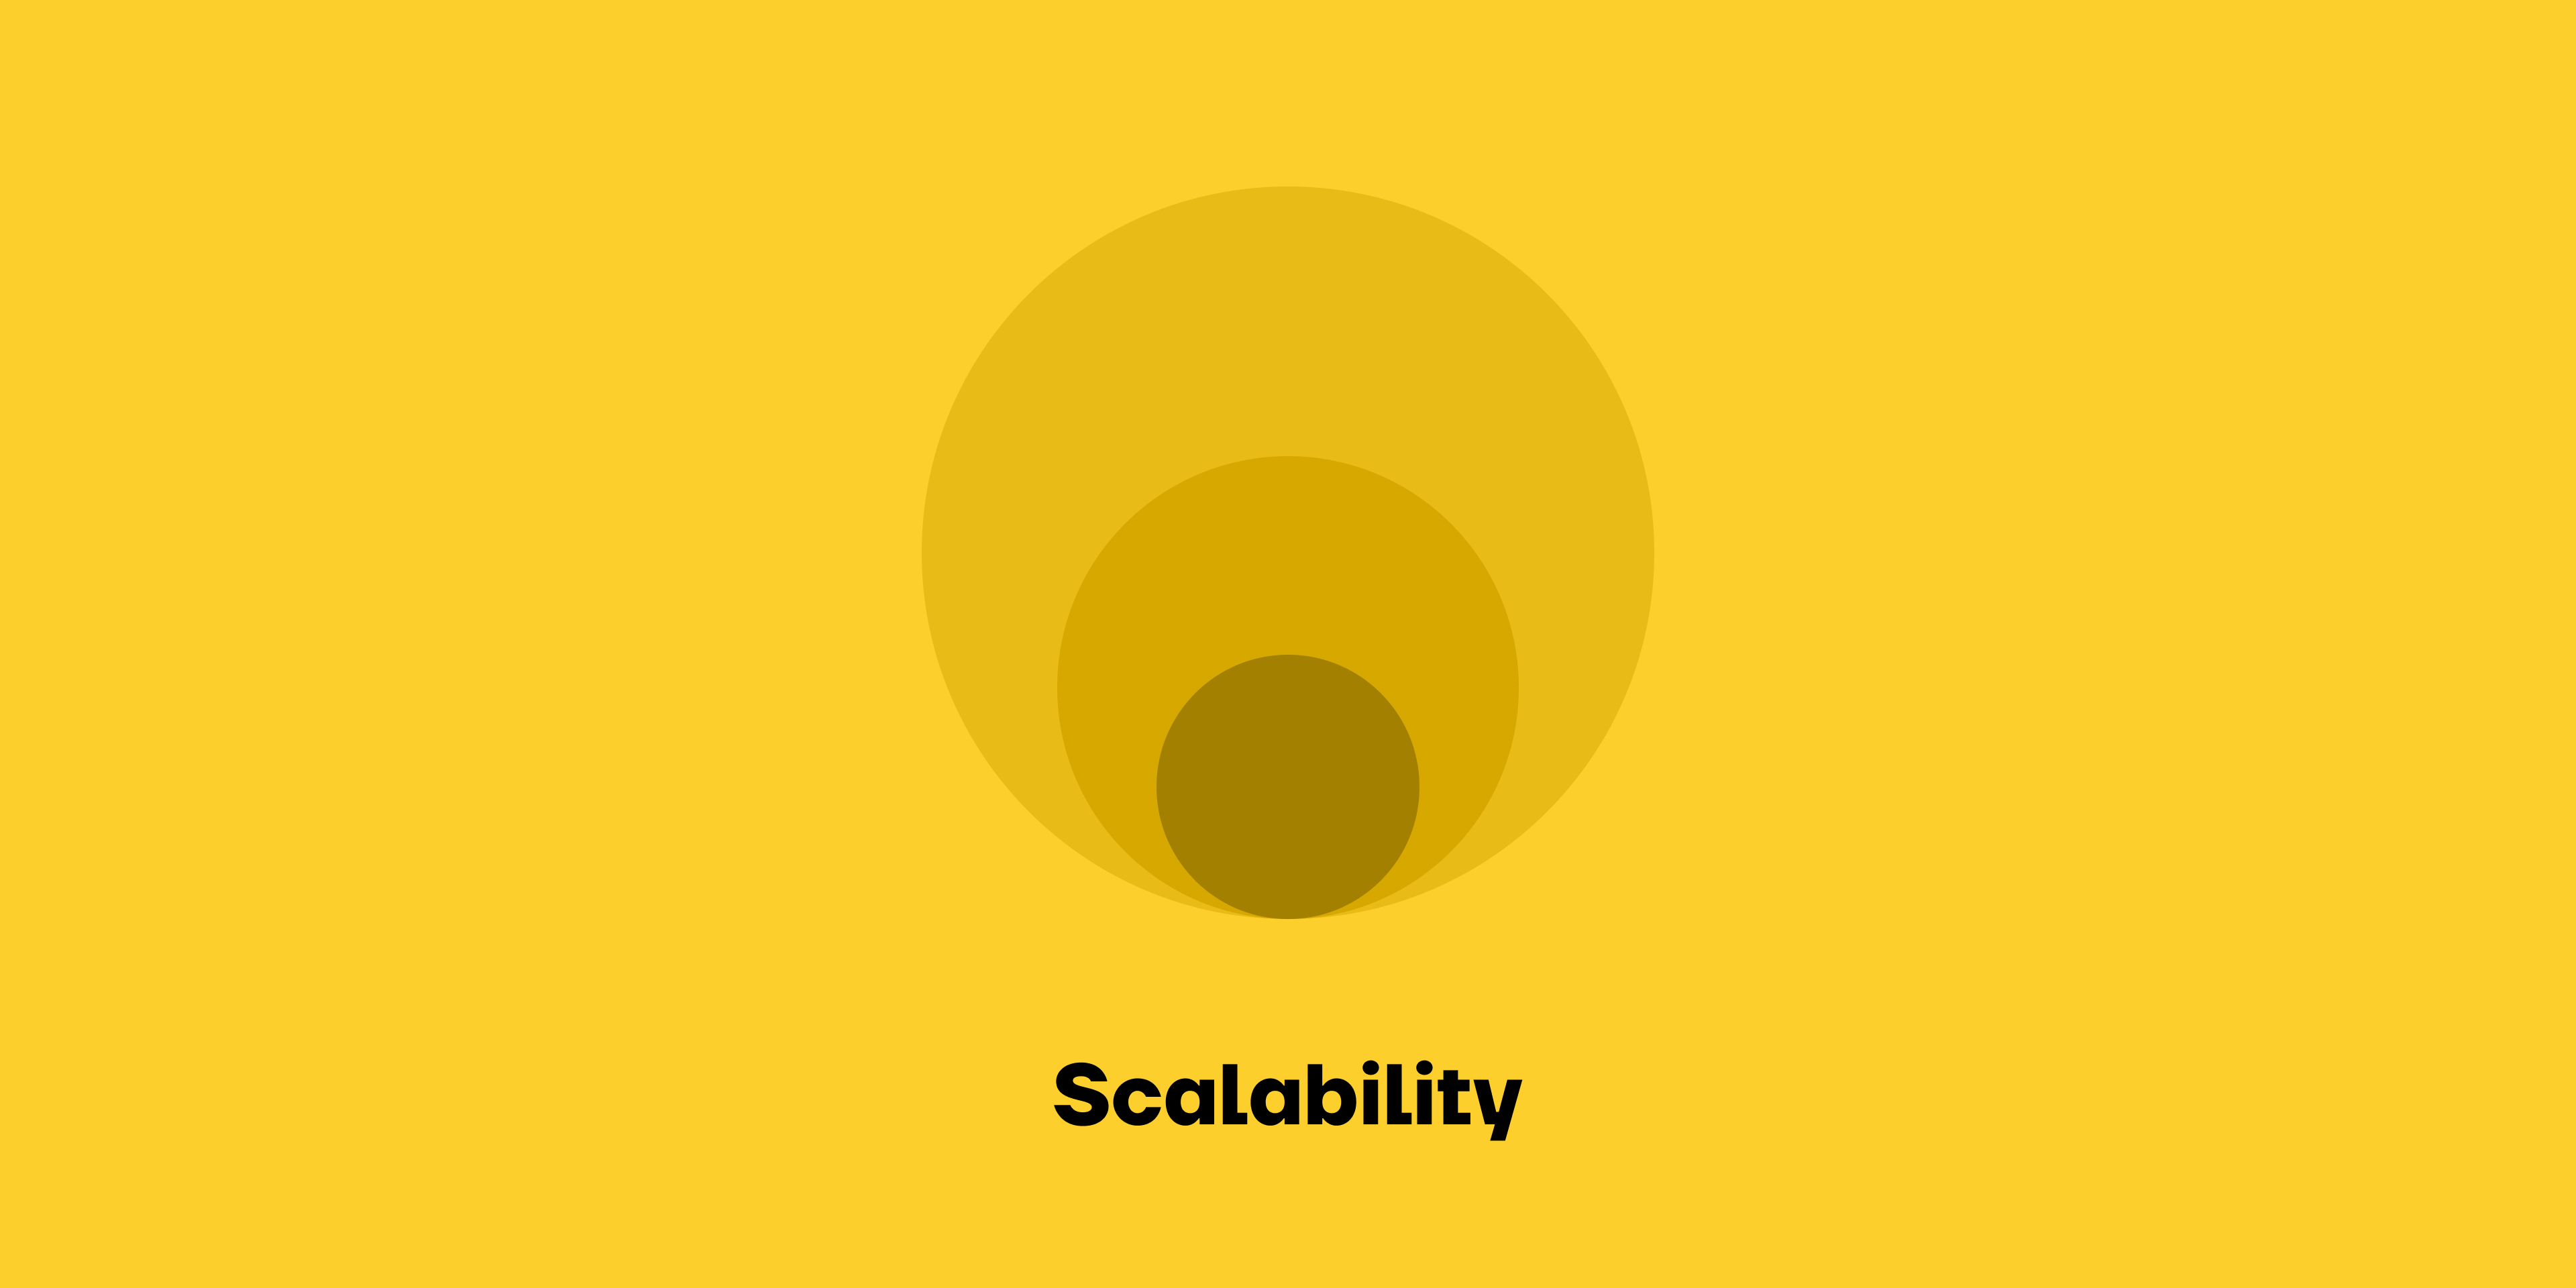 Design System Benefit: Scalability